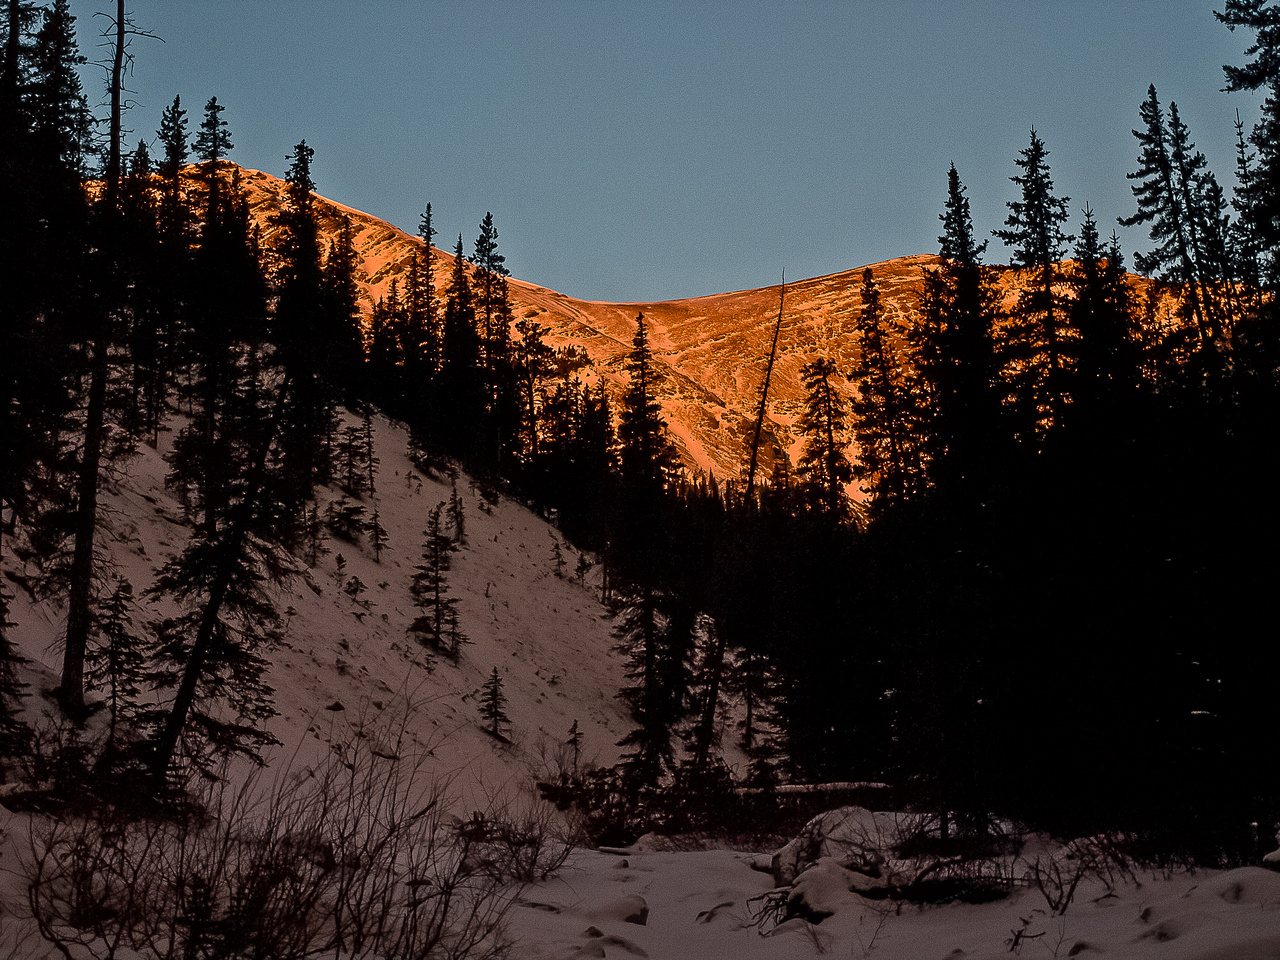 Part of ridge from Belmore to Tiara as the sun continues to rise.